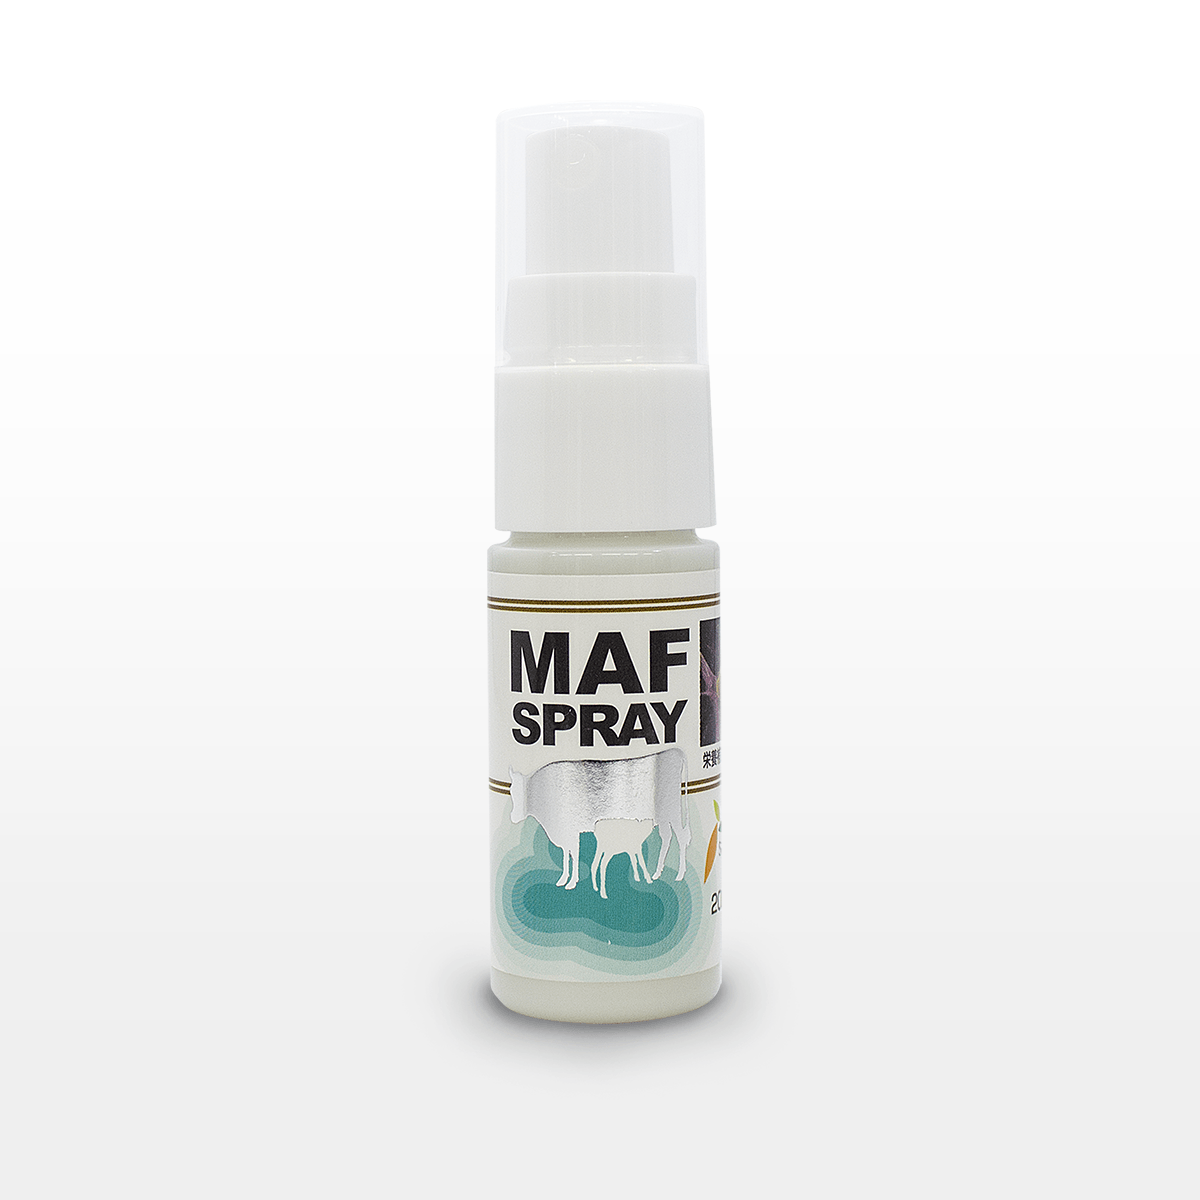 MAF_SPRAY